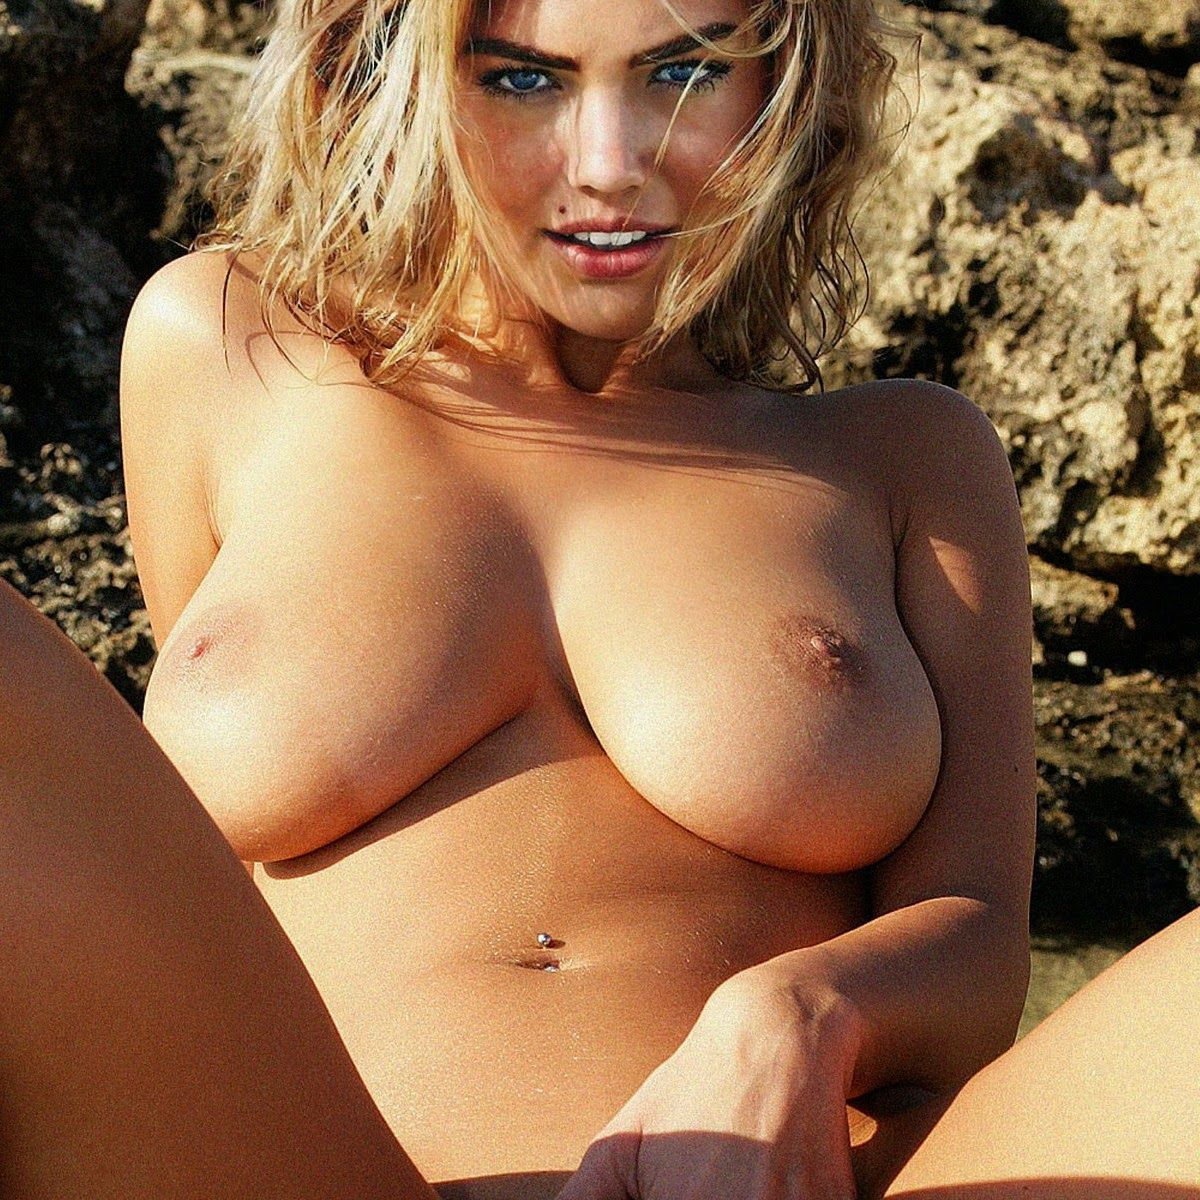 Kate Upton Nude Fakes Complete 15 best kate upton images on pinterest | beautiful women, celebs